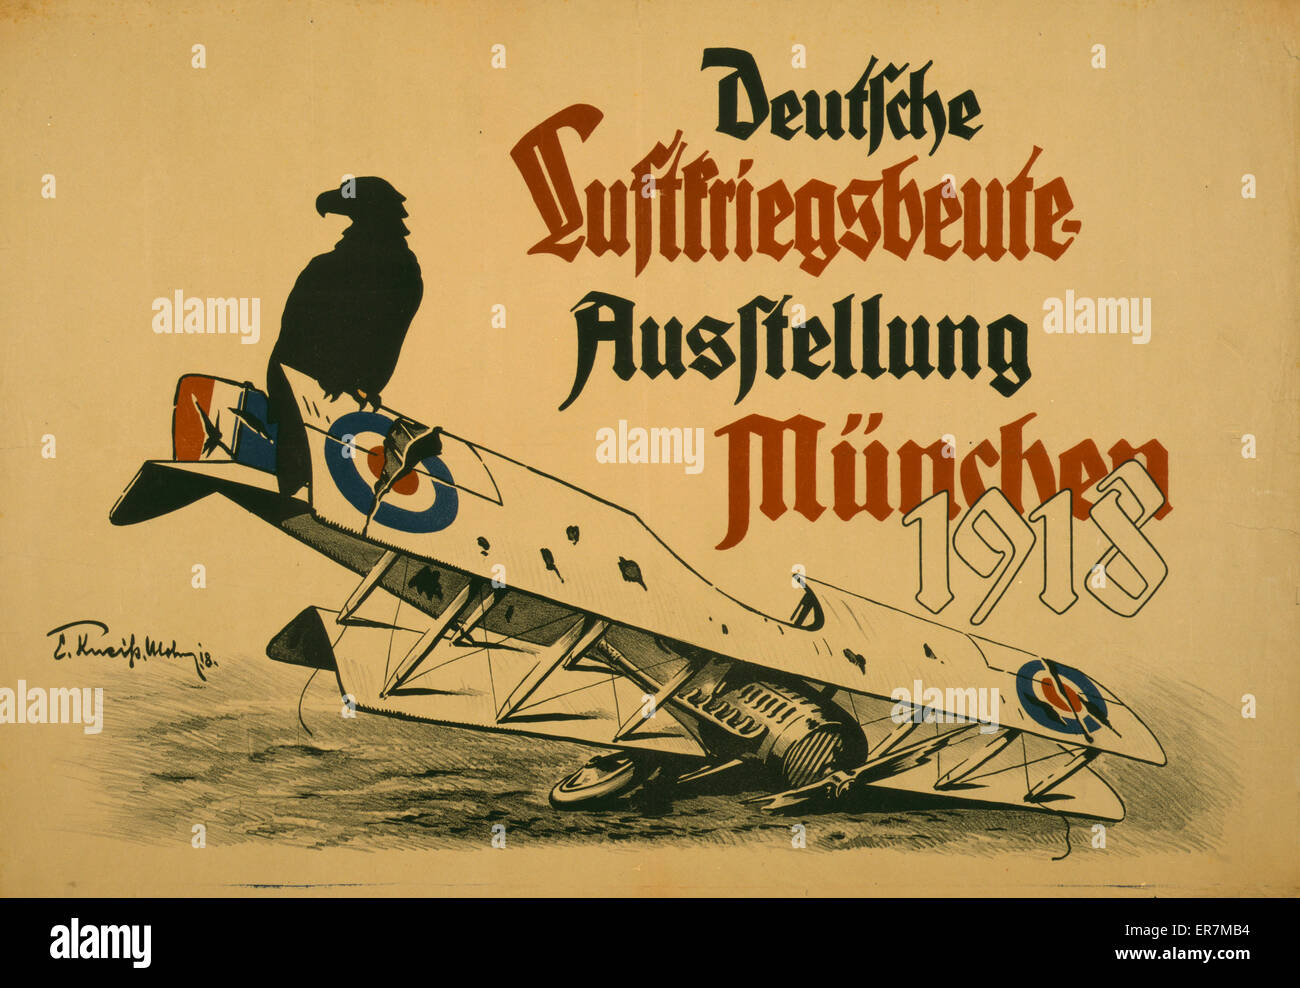 Deutsche Luftskriegsbeute Ausstellung Munchen 1918. Poster shows a black eagle sitting on the wing of a downed British - Stock Image